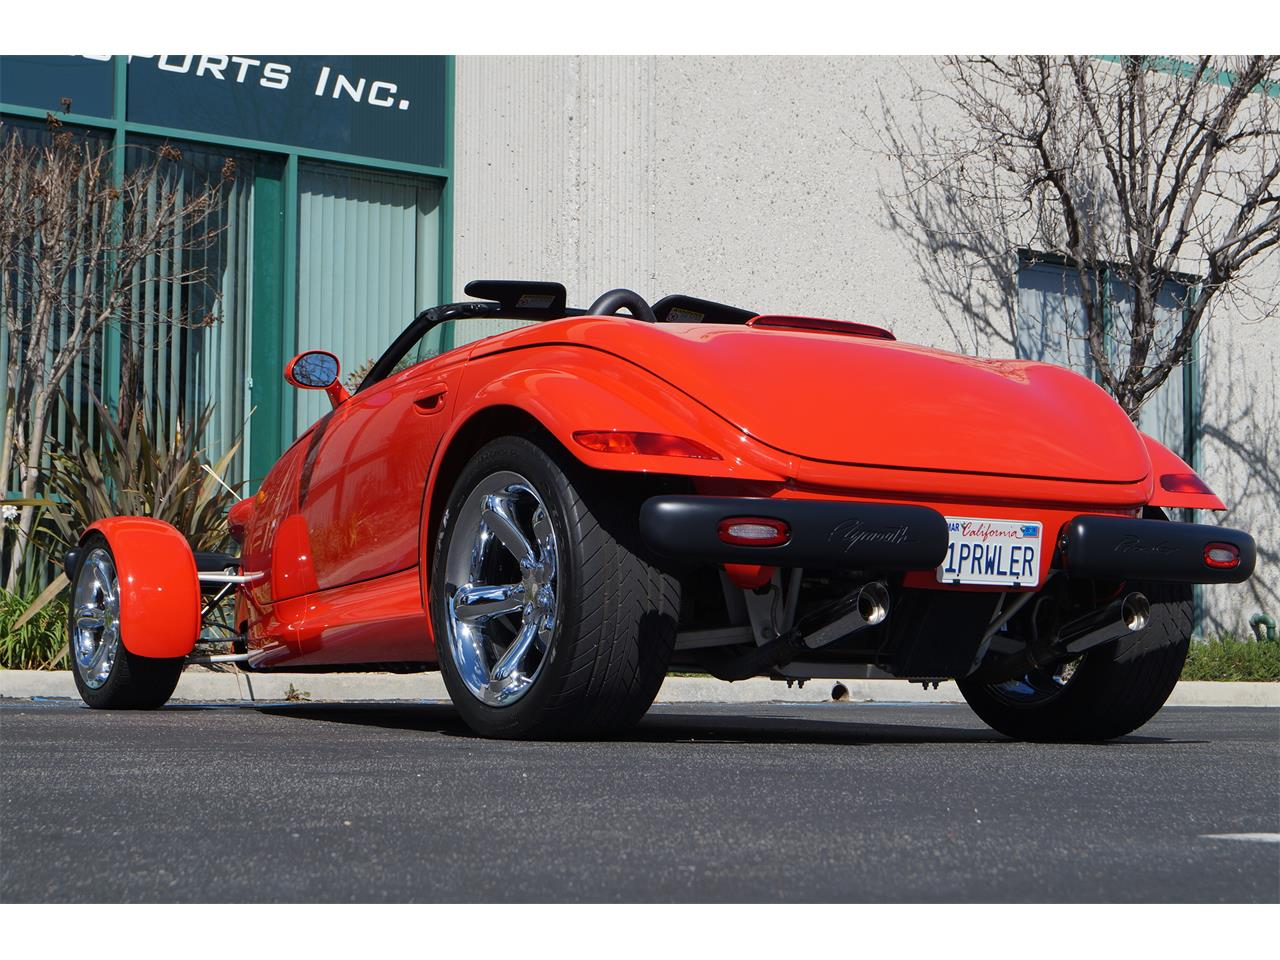 2000 Plymouth Prowler for sale in Thousand Oaks, CA – photo 44